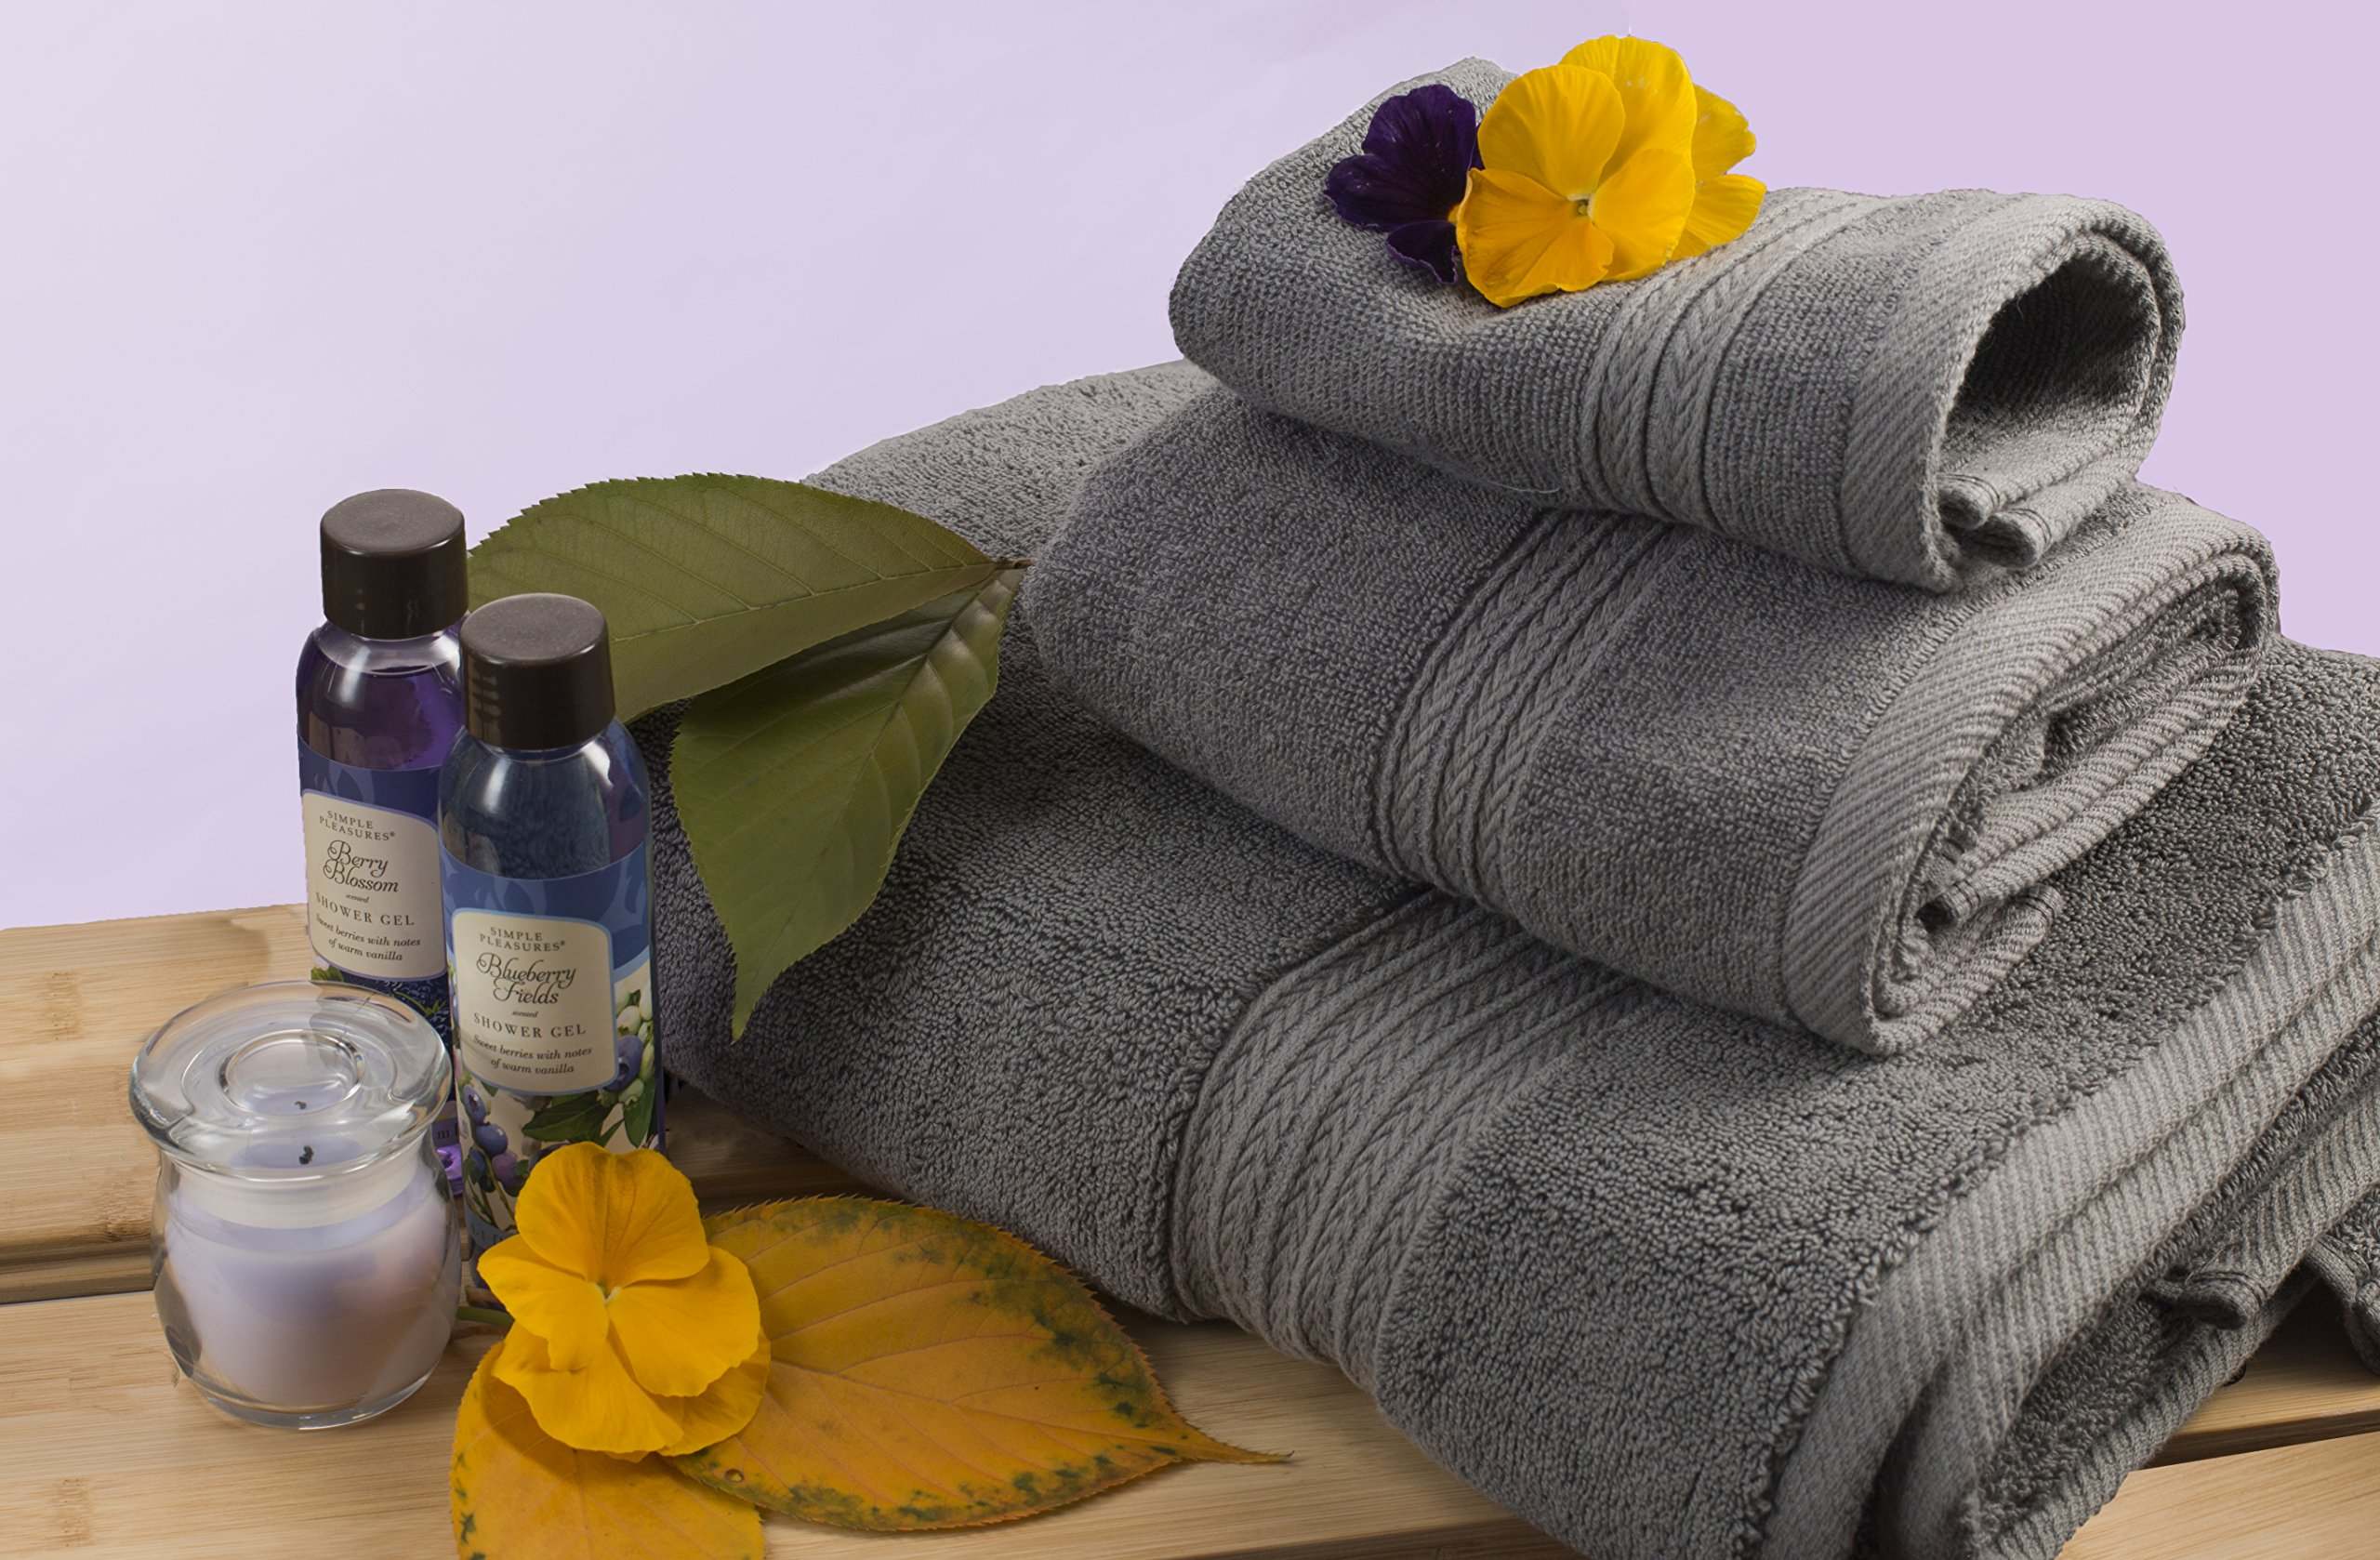 TowelPro Luxury Premium Soft 100% Woven Cotton Highly Absorbent Machine Washable Multi-Purpose, Hotels, Spa, Home Towels Set of 10-2 Bath Towels, 2 Hand Towels, 6 Wash Cloths (Gray)